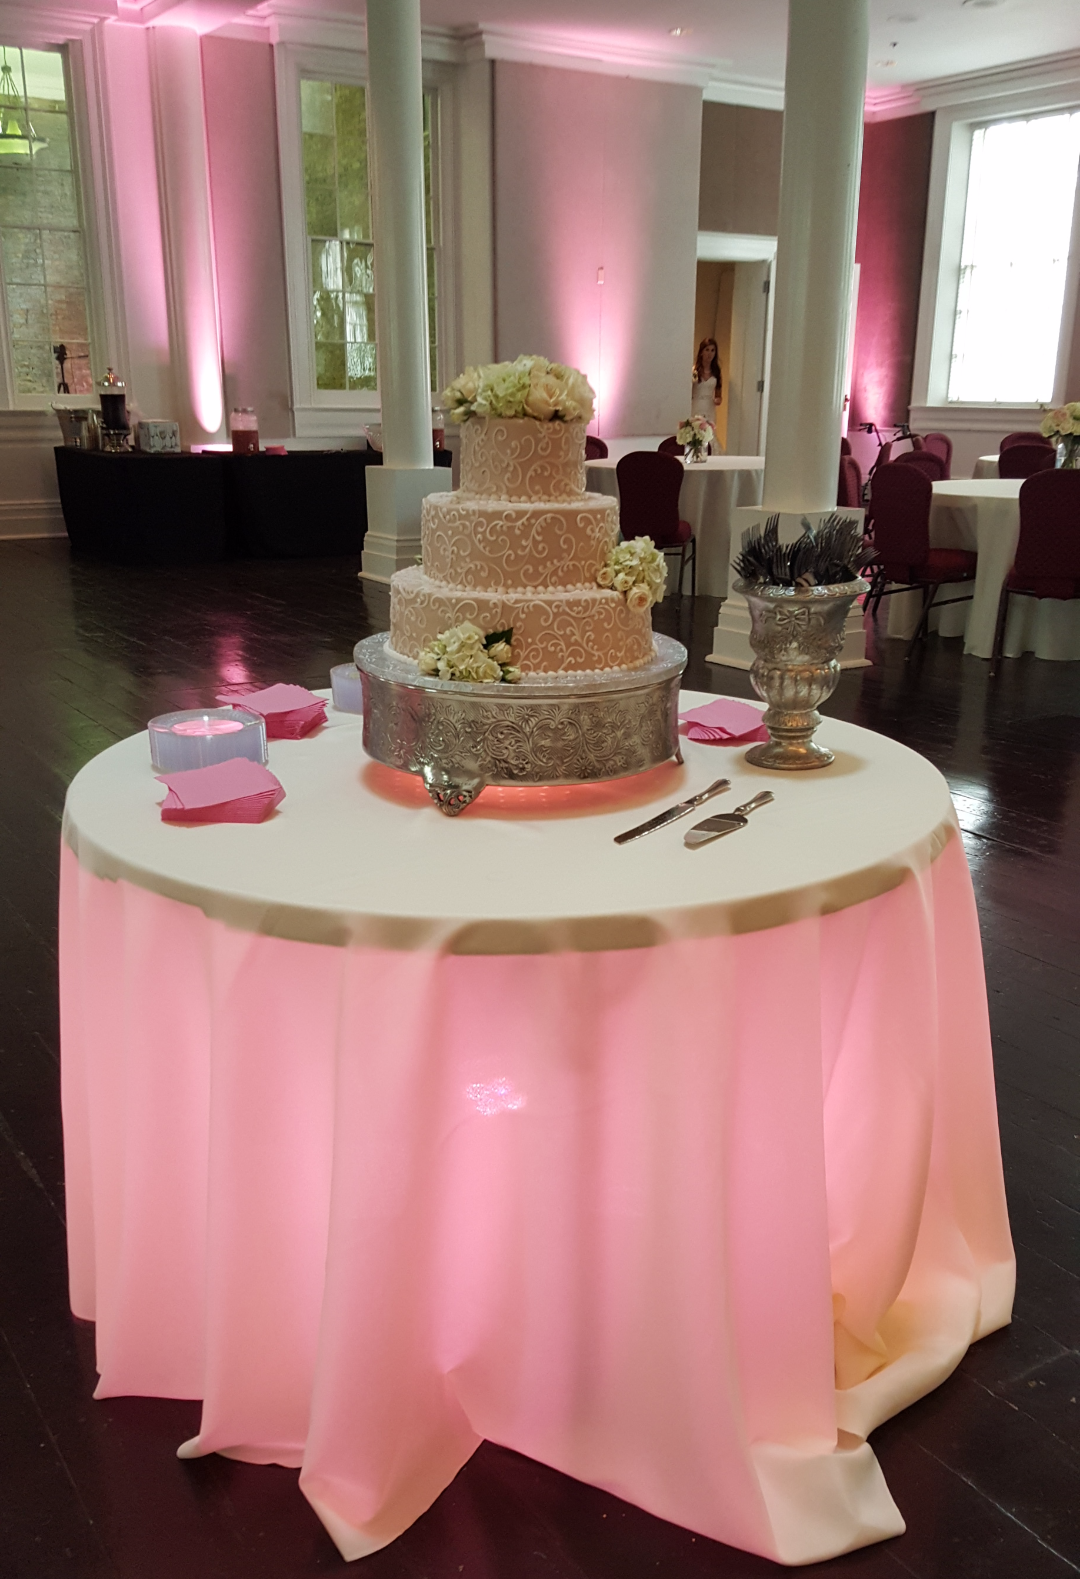 Elegant Cake Spot Lighting!